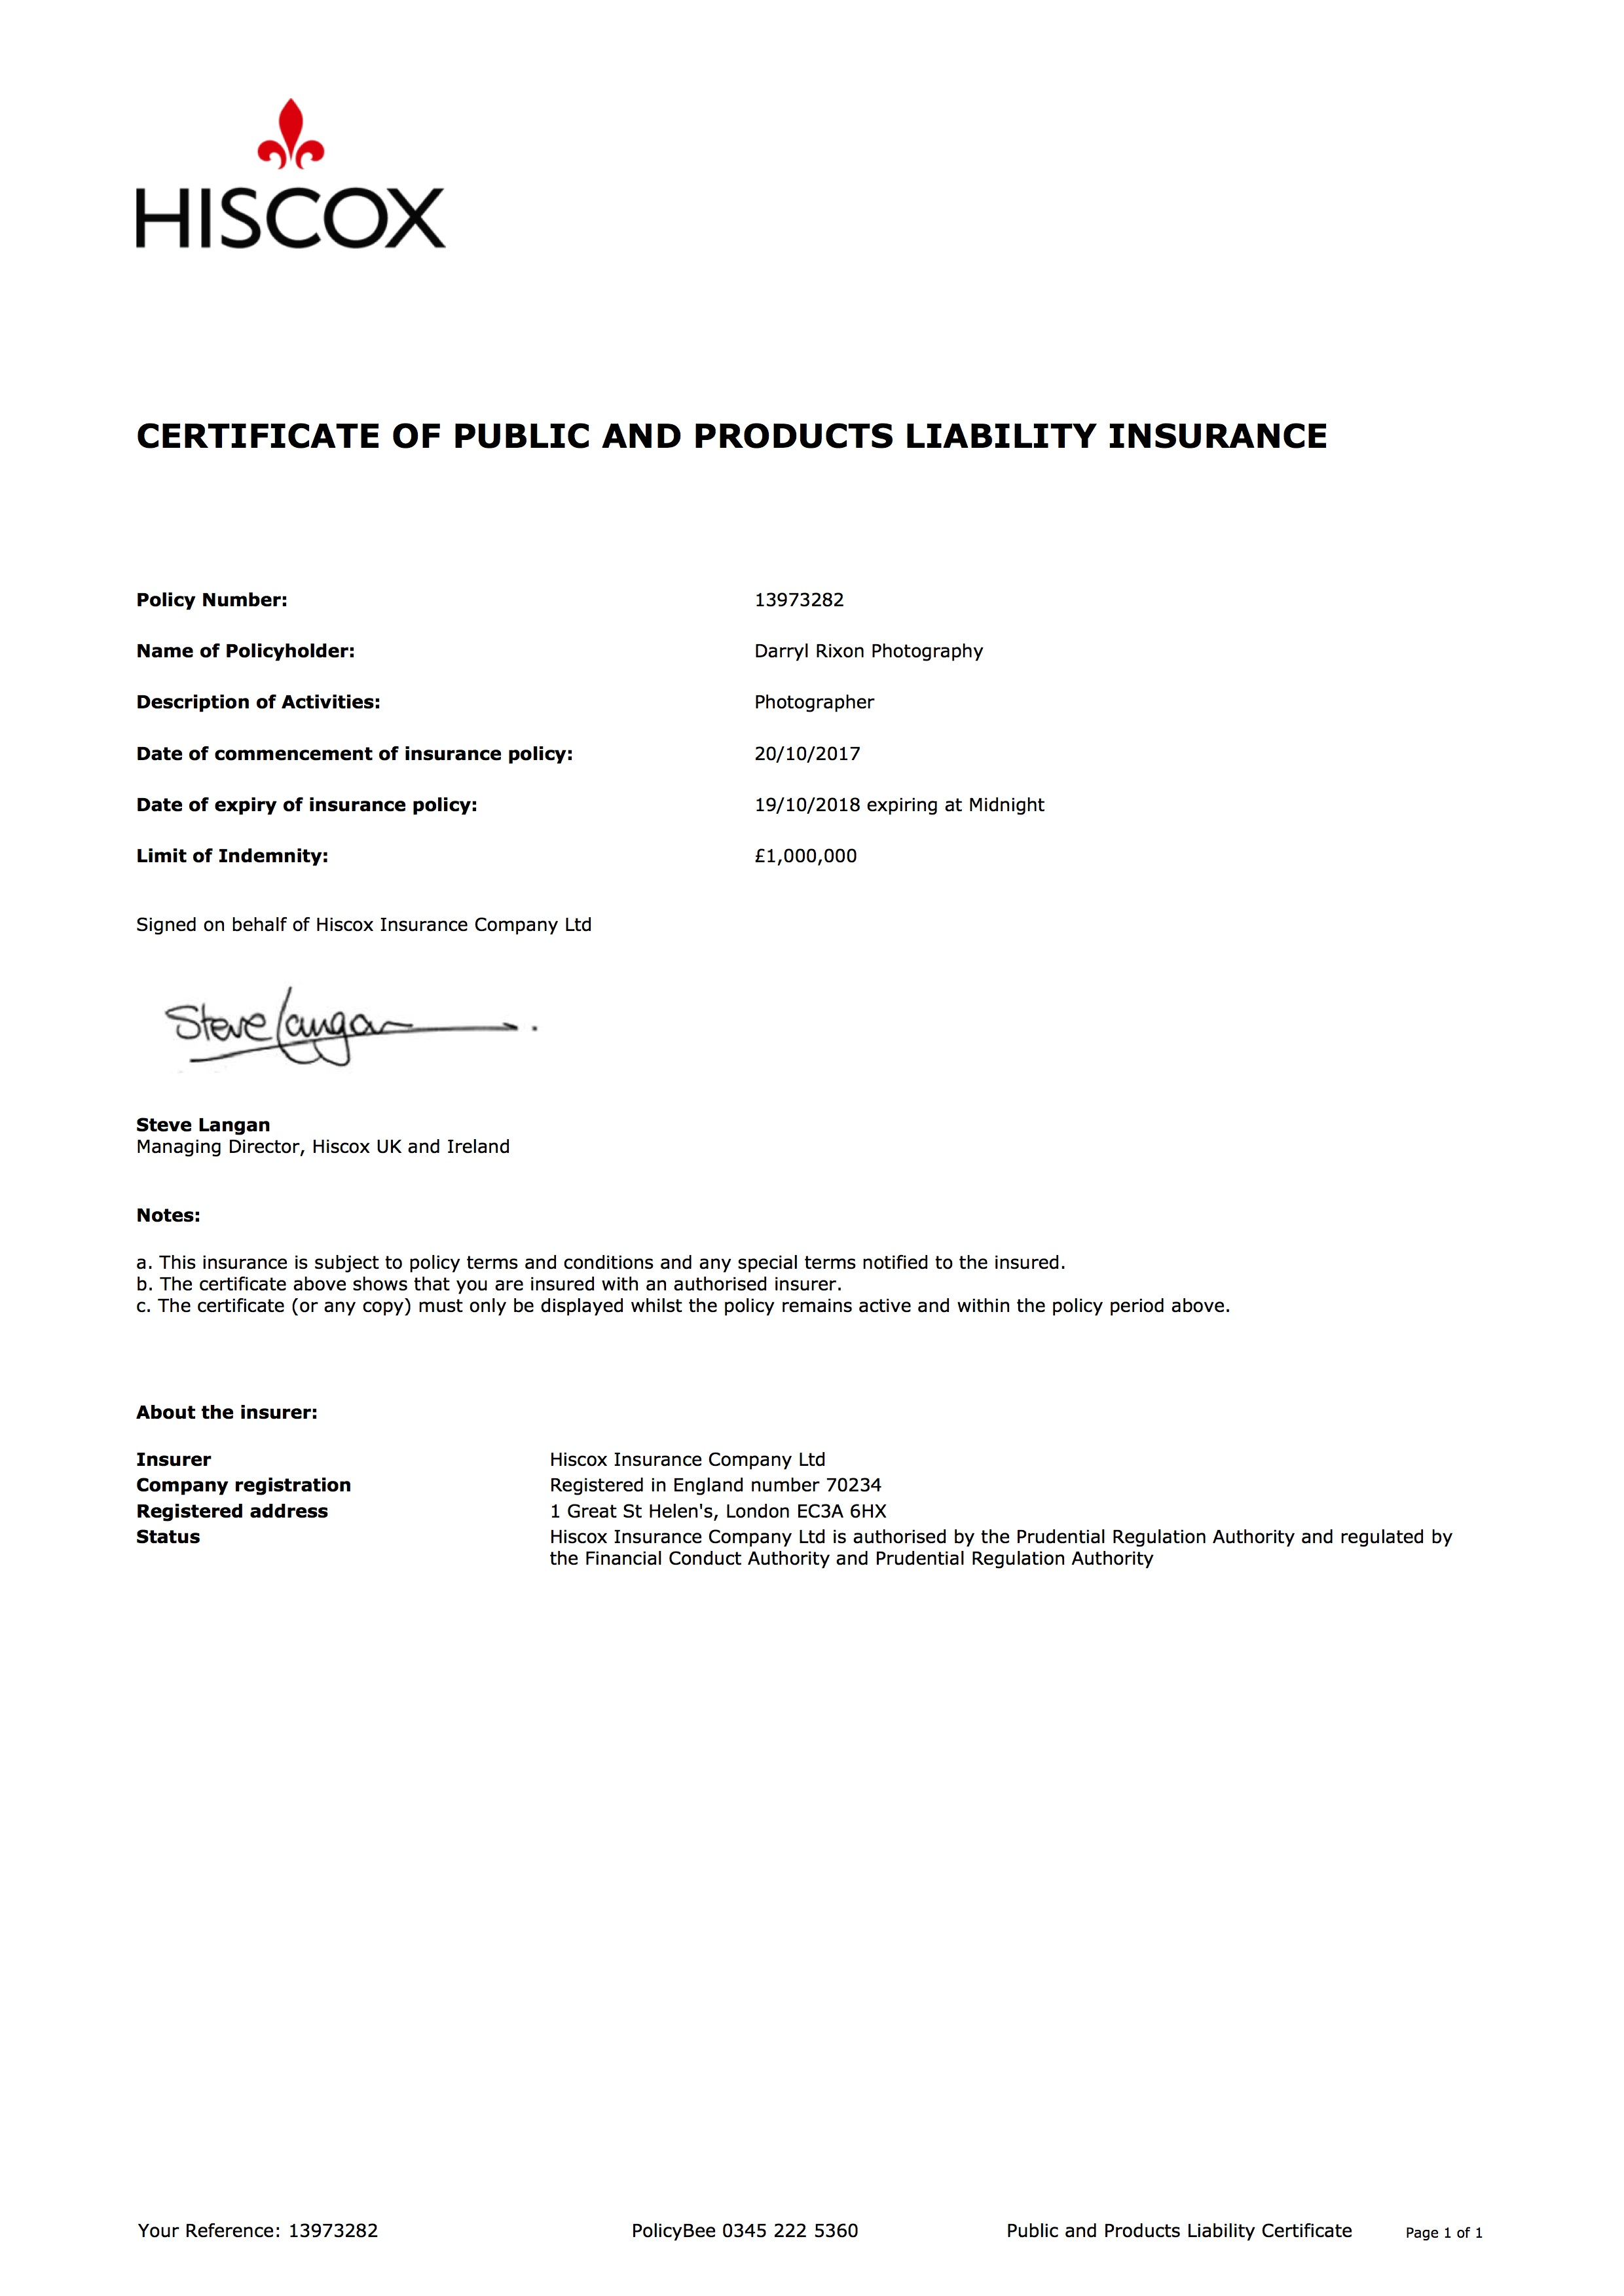 PublicandproductsliabilitycertificateDx1686061v13973282.jpg